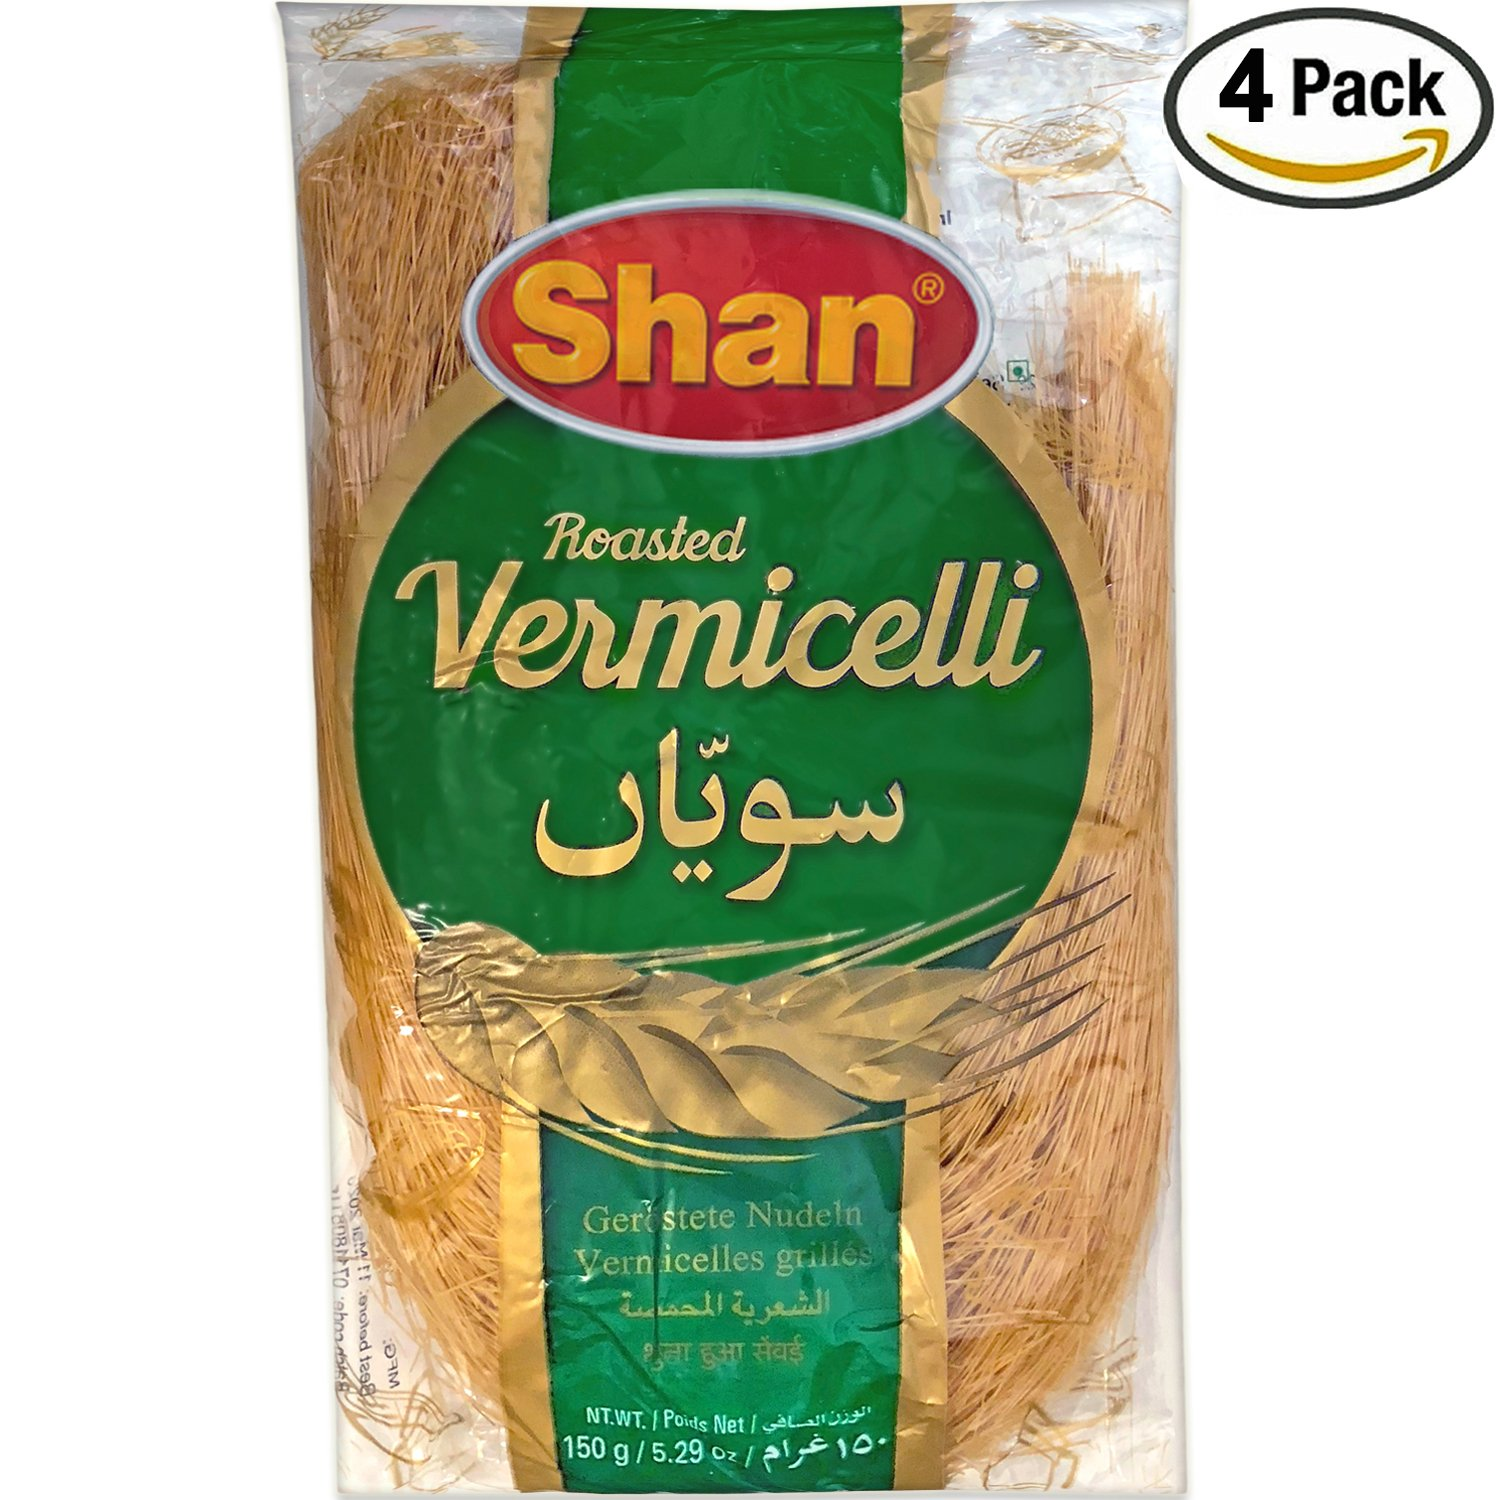 Shan - Roasted Vermicelli, 21.16oz/4x150g, (4 PACK) by Shan